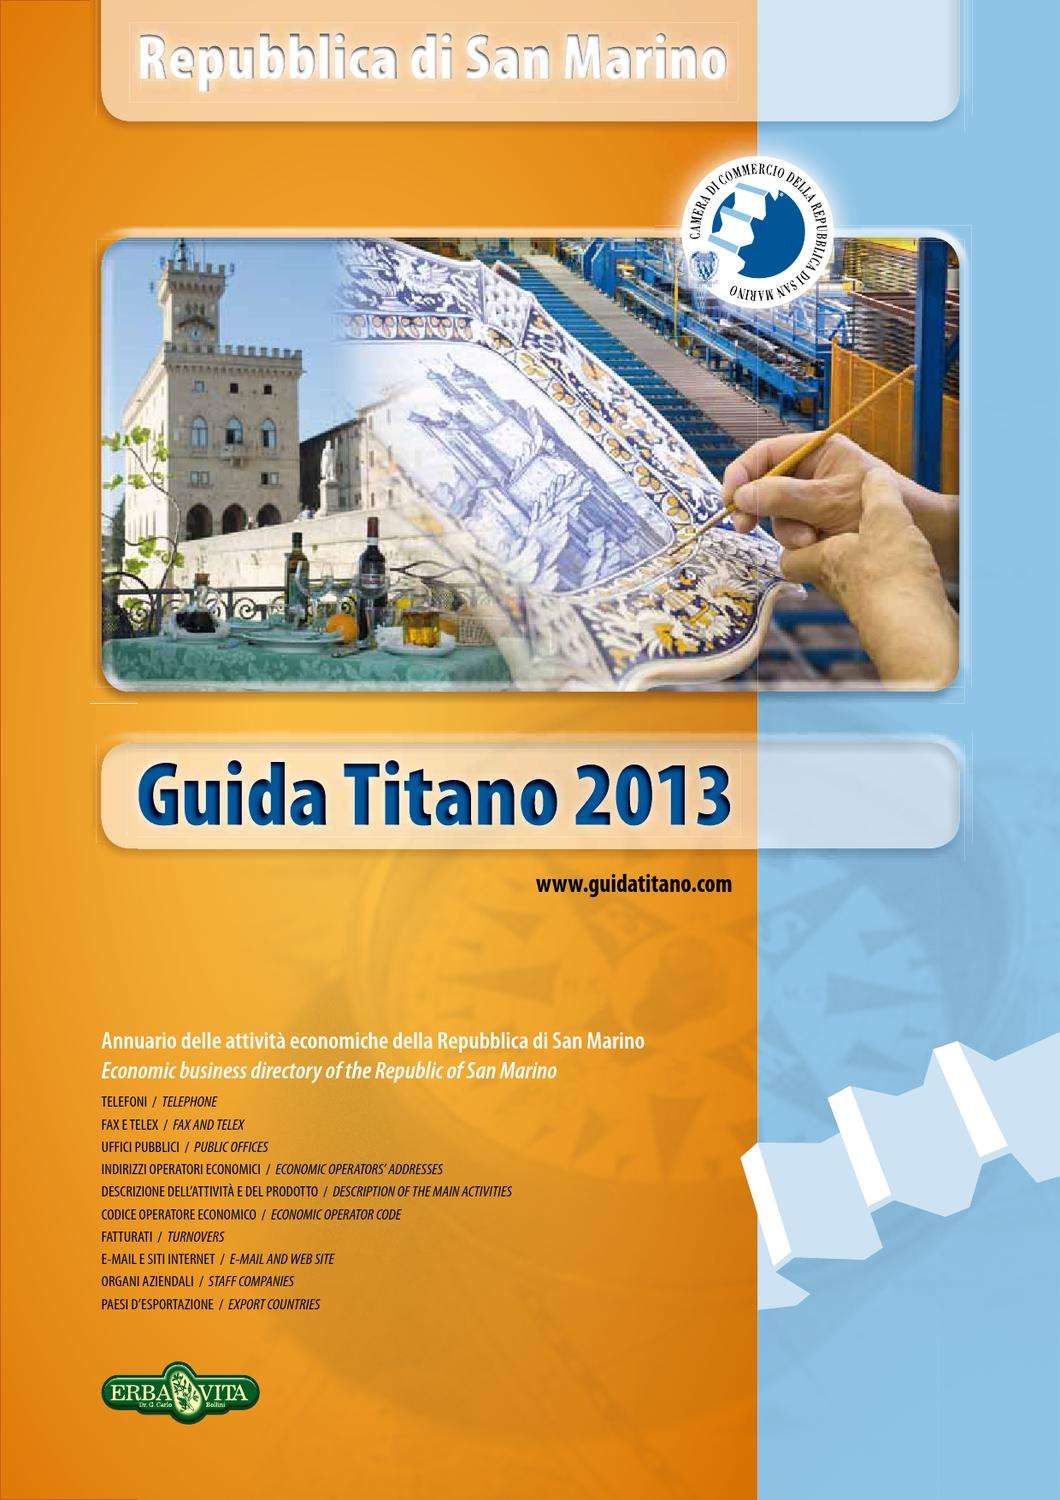 Guida Titano 2013 by Camera di Commercio San Marino   San Marino Chamber of  Commerce - issuu af3abb7990a